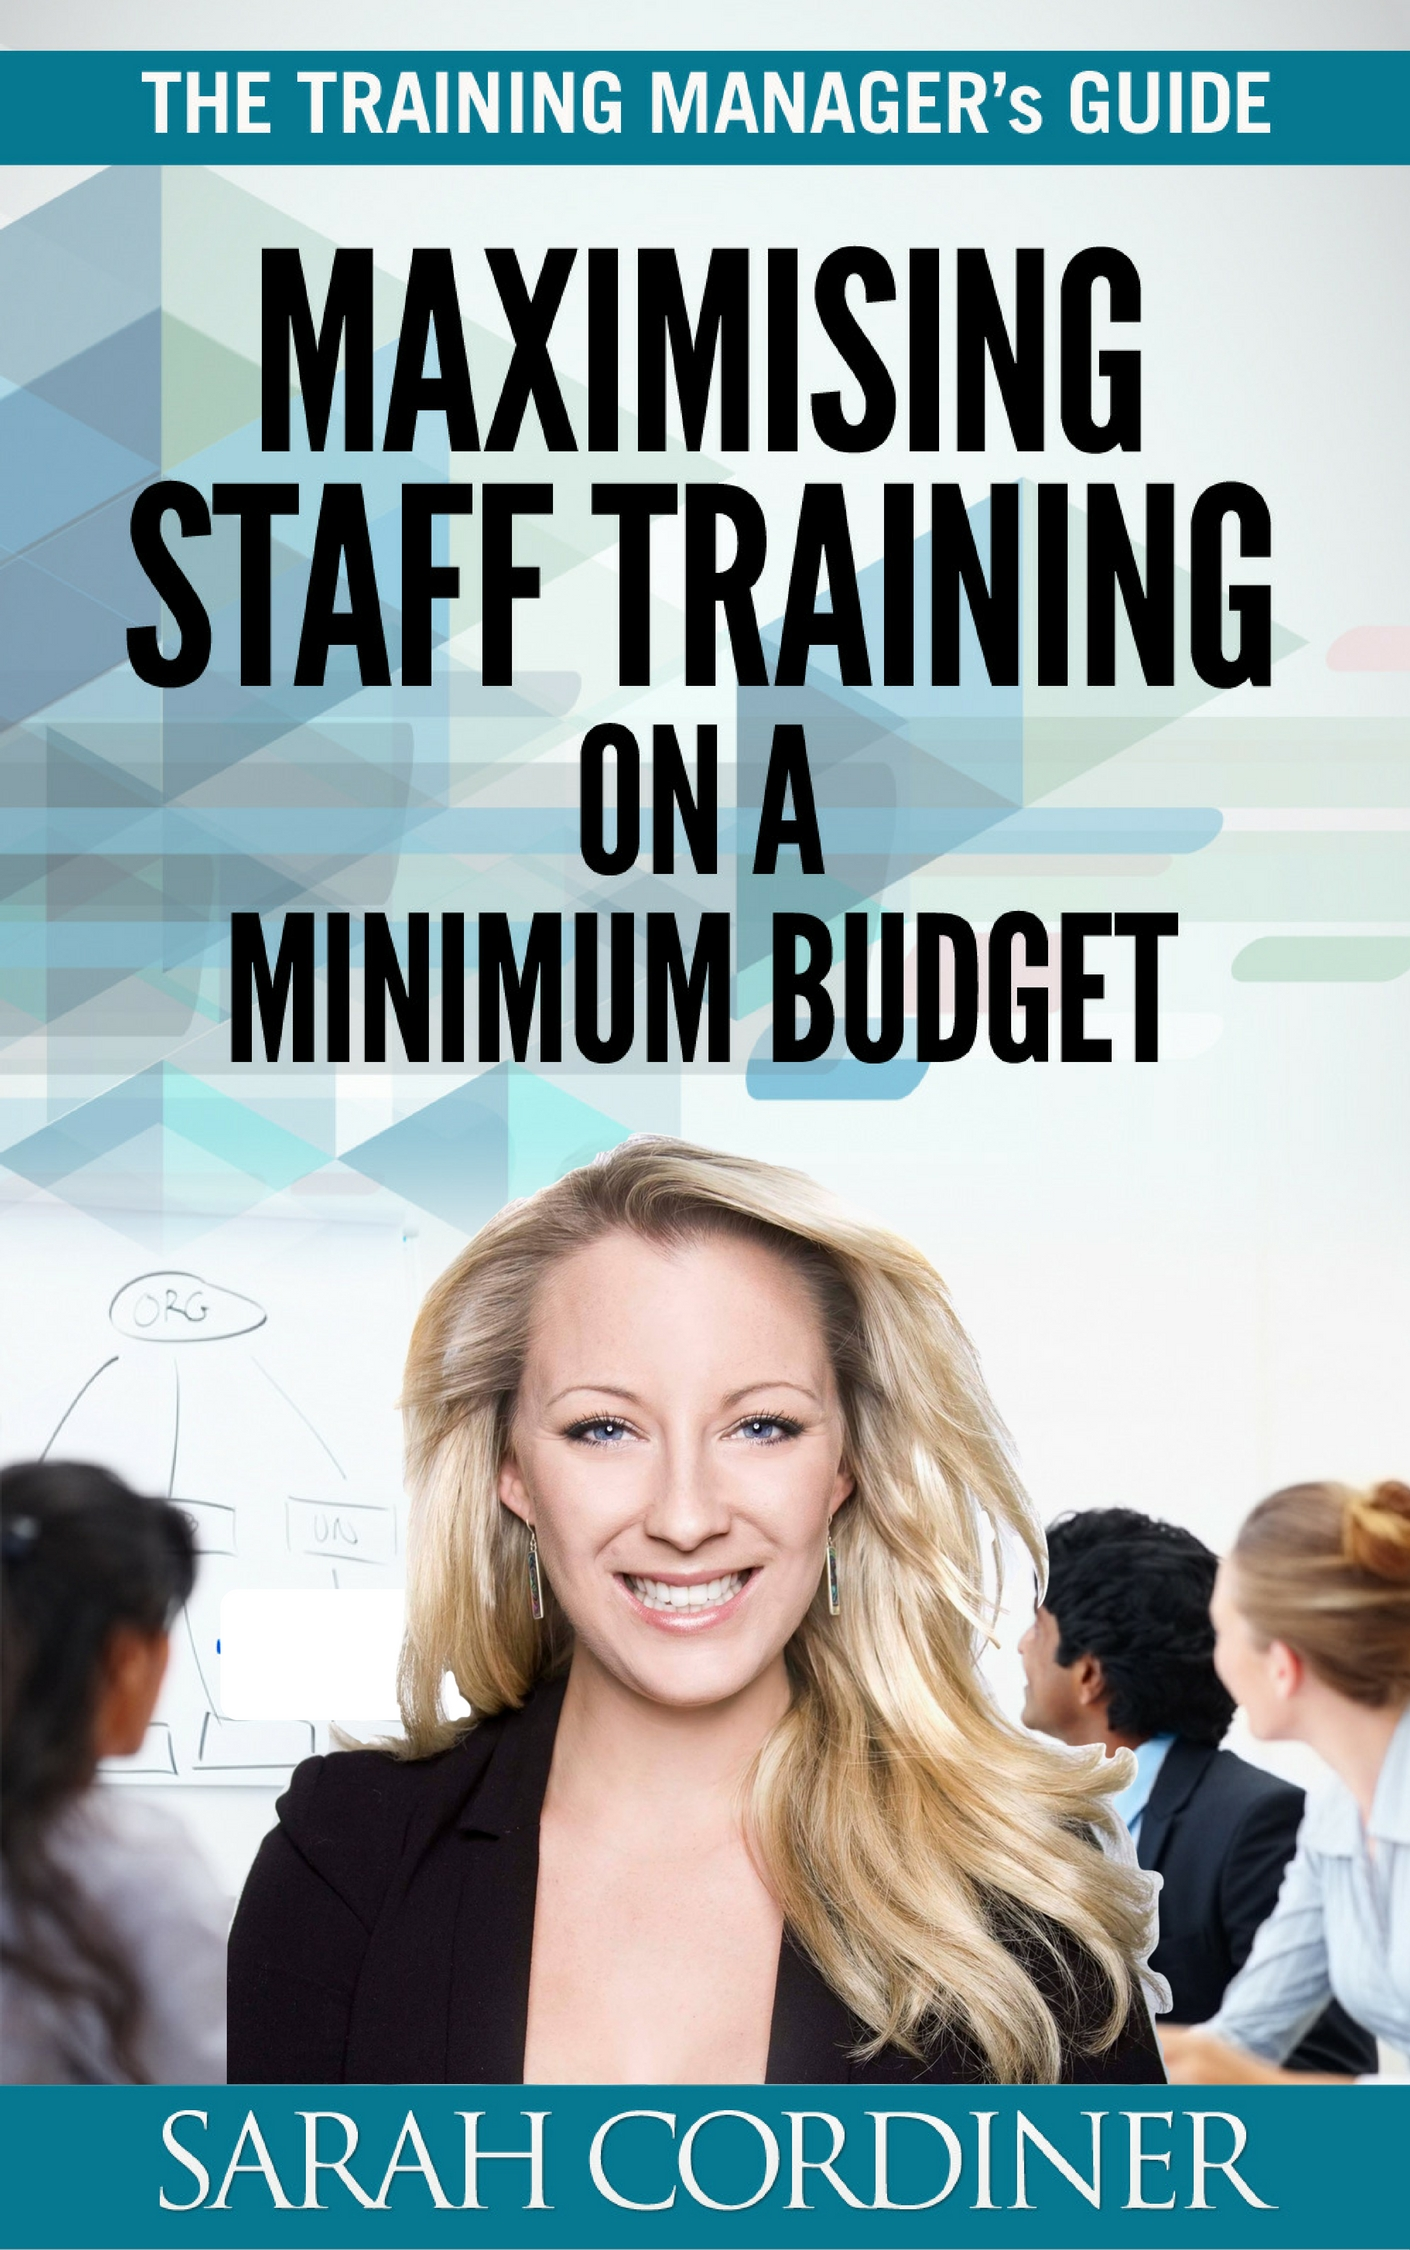 maximising staff training ona  minimum budget - book by sarah cordiner